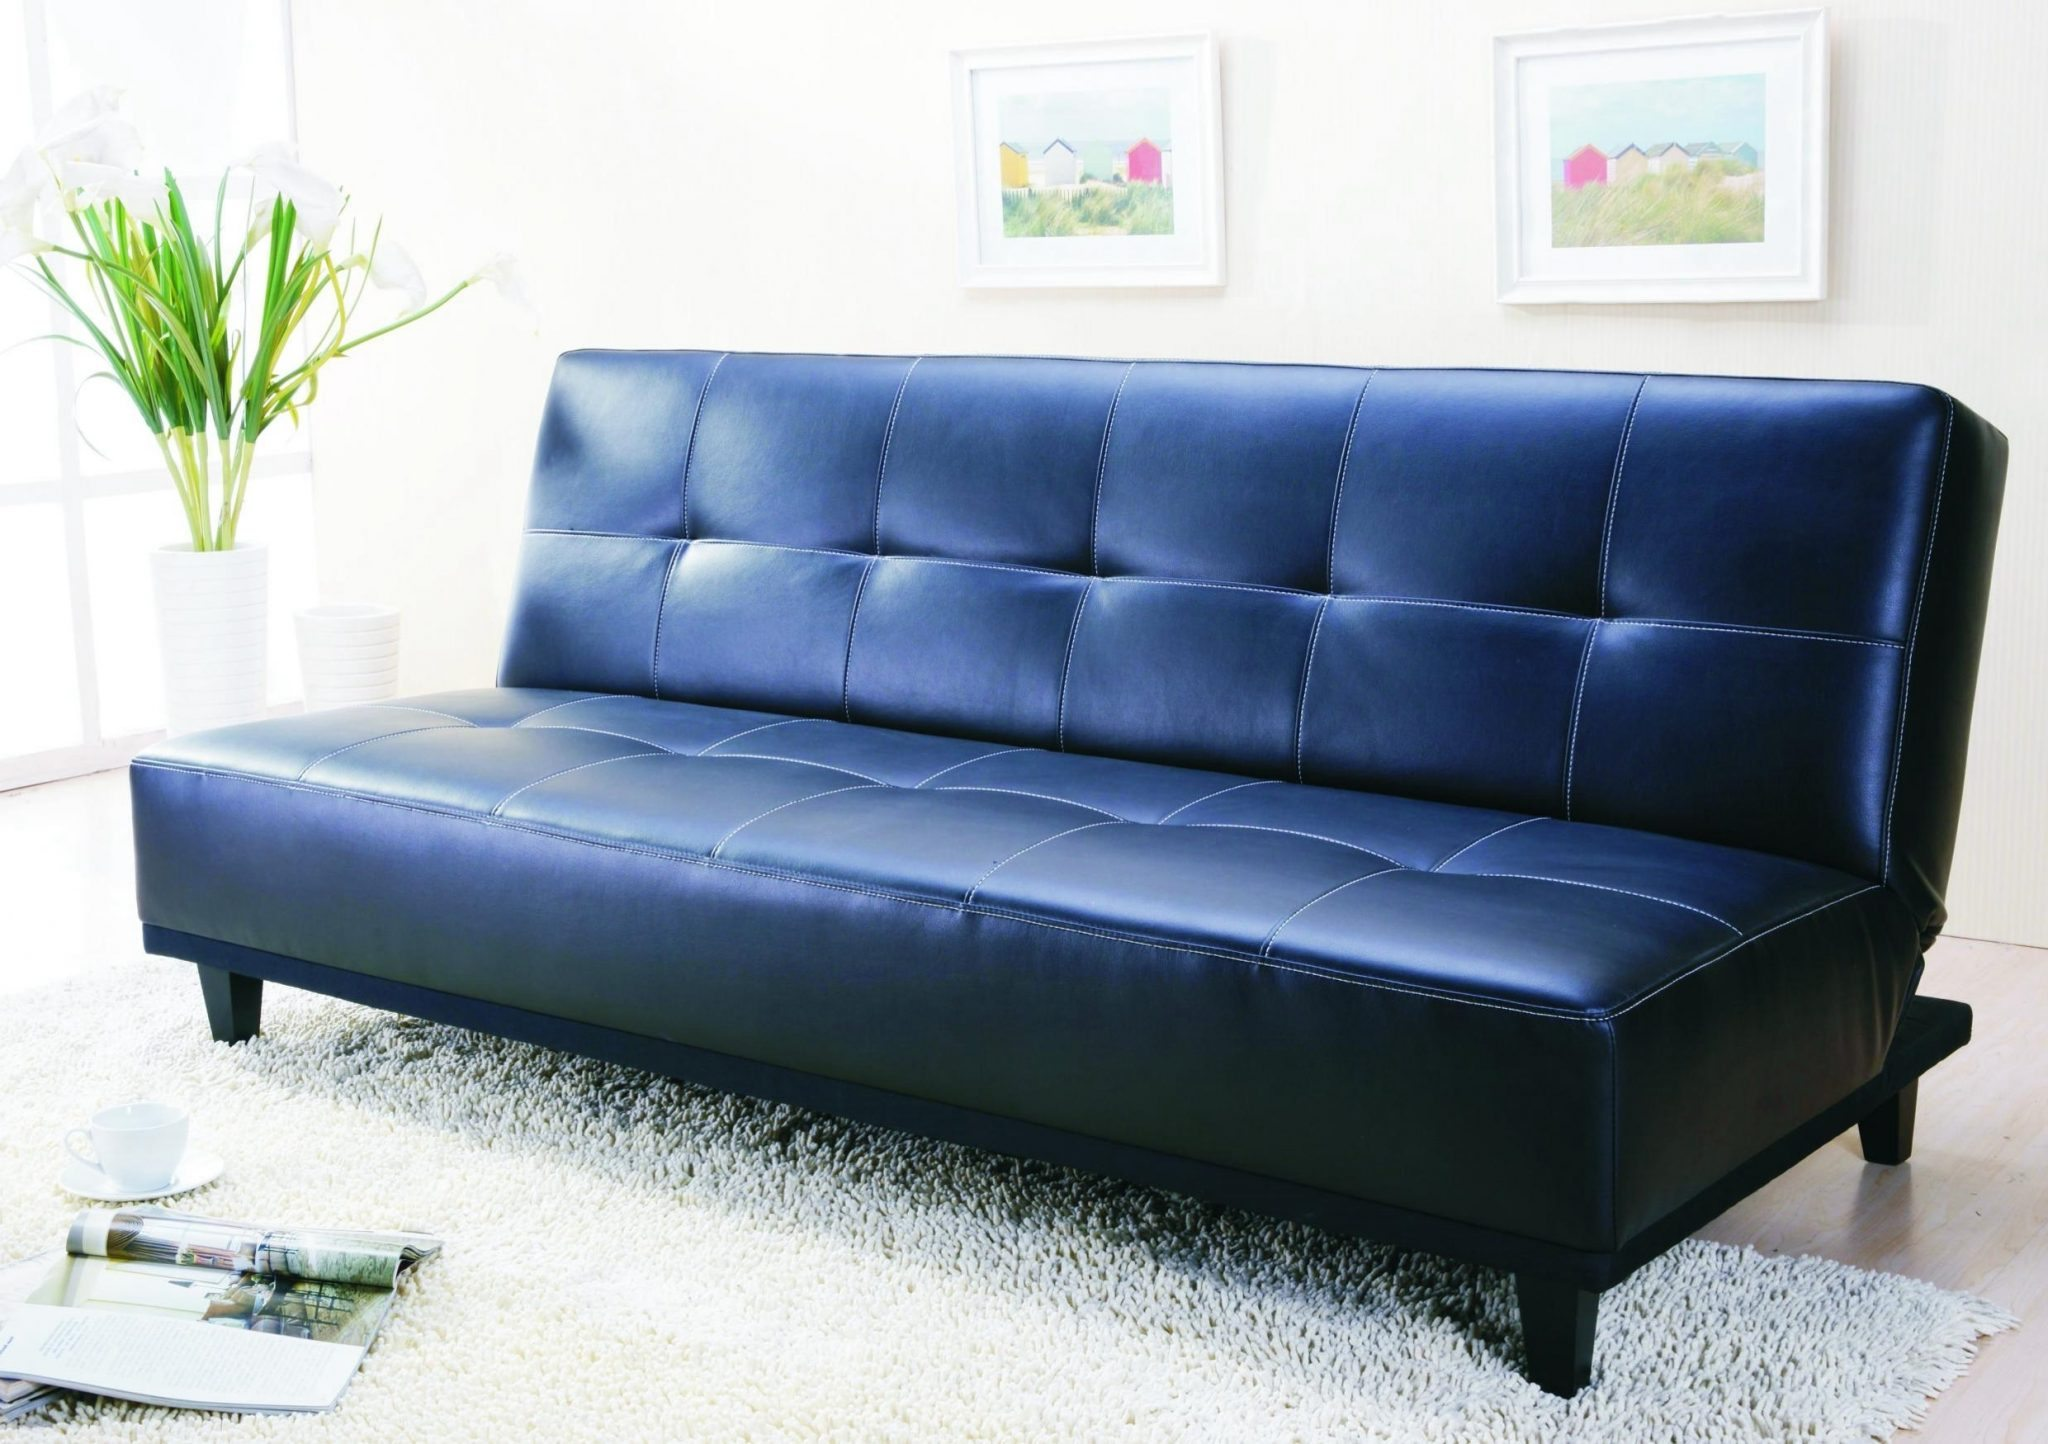 cute-light-blue-cushion-placed-on-comfortable-blue-leather-sofa-at